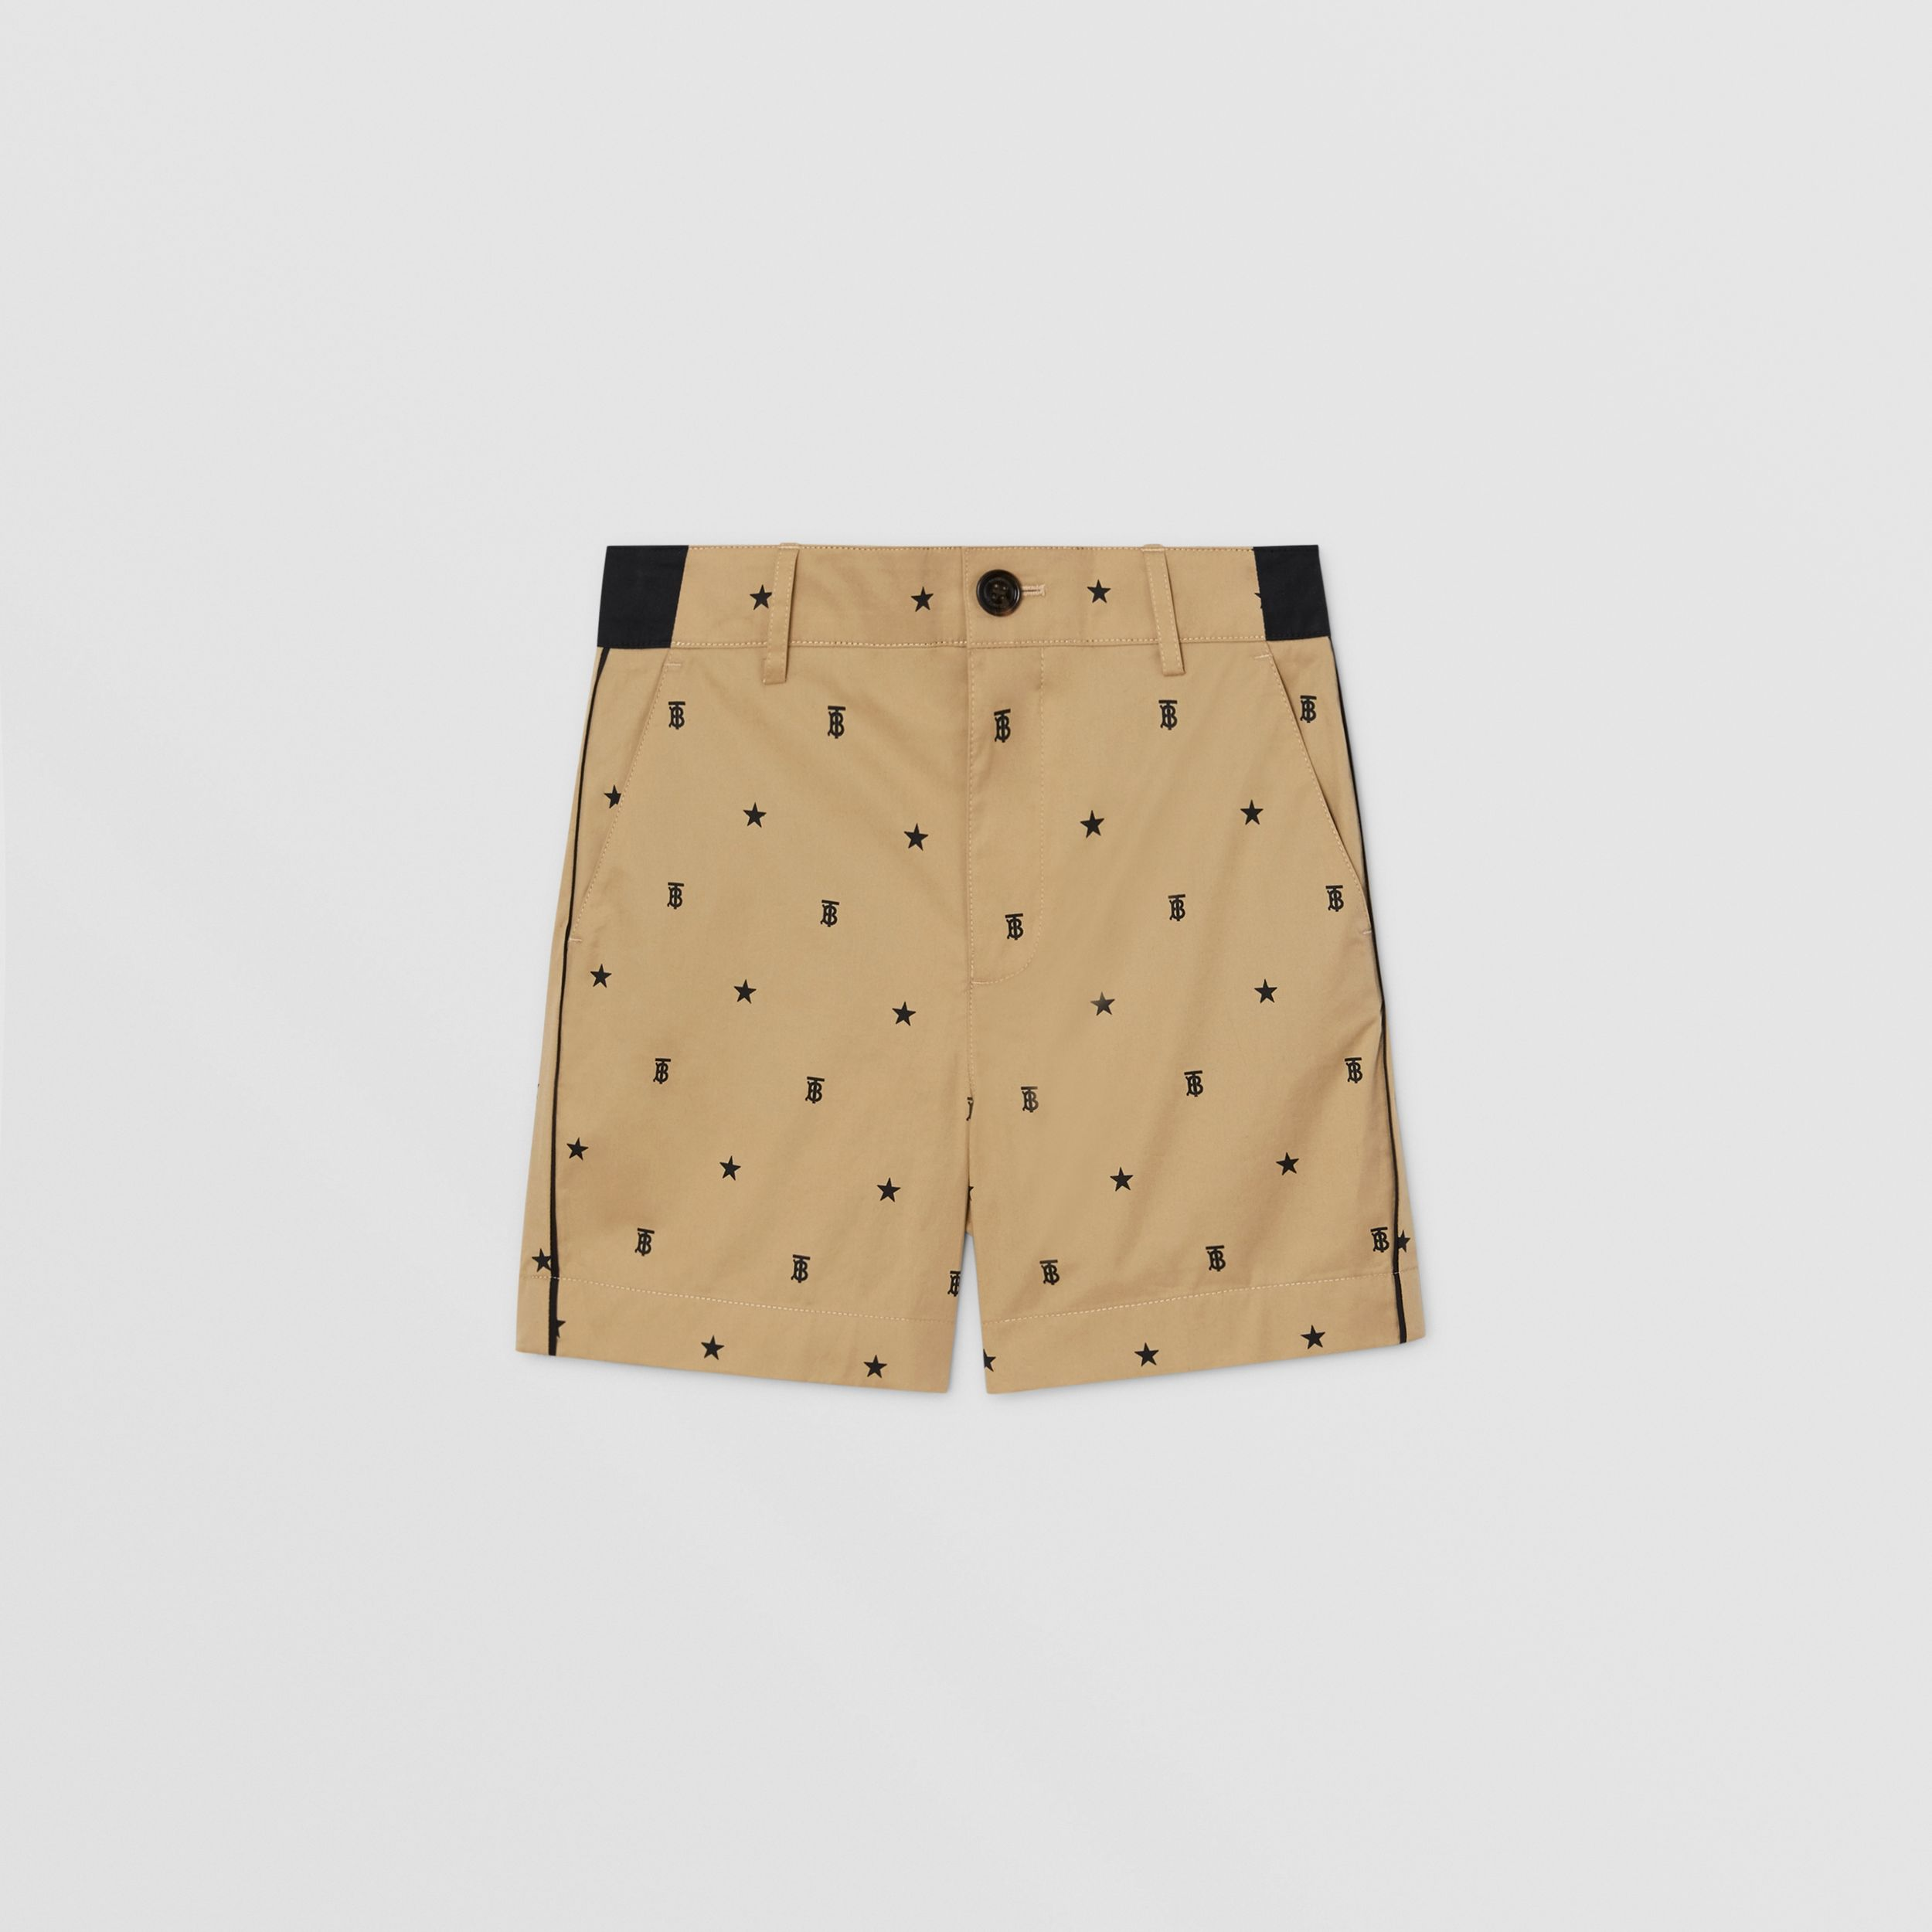 Star and Monogram Motif Tailored Shorts in Sand | Burberry - 1